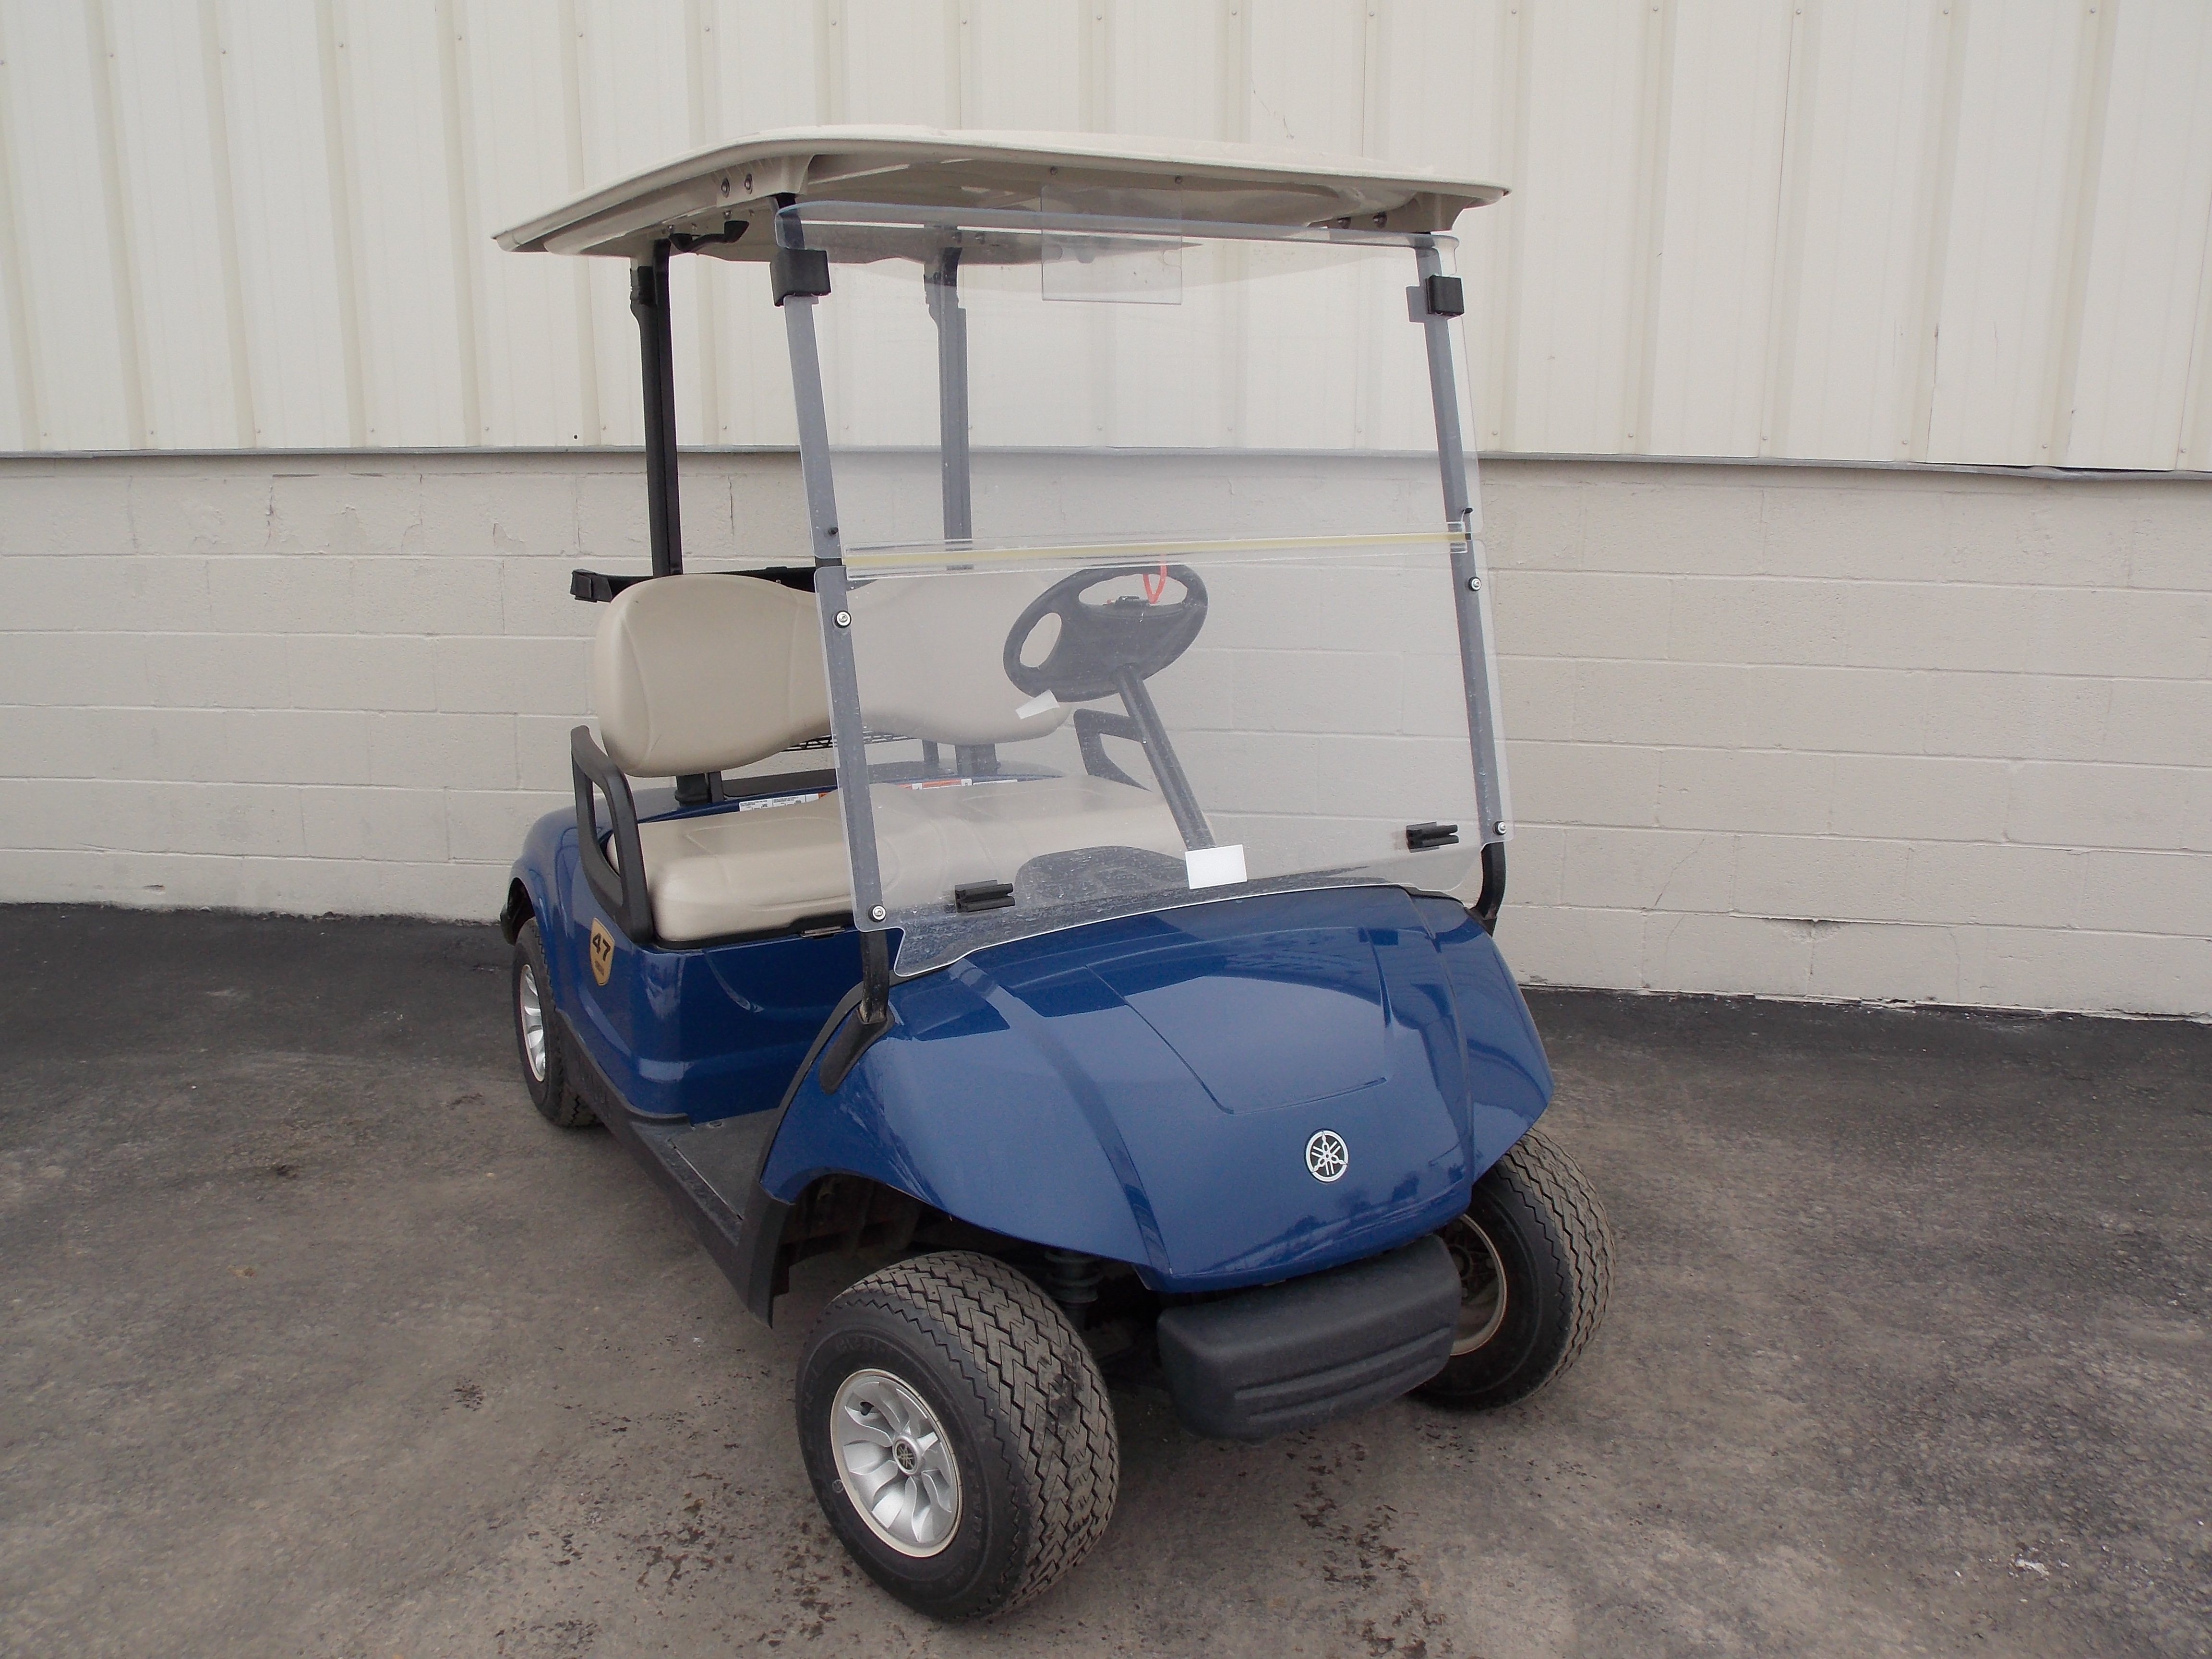 2019015229-yamaha-golf-cart-06-jpg